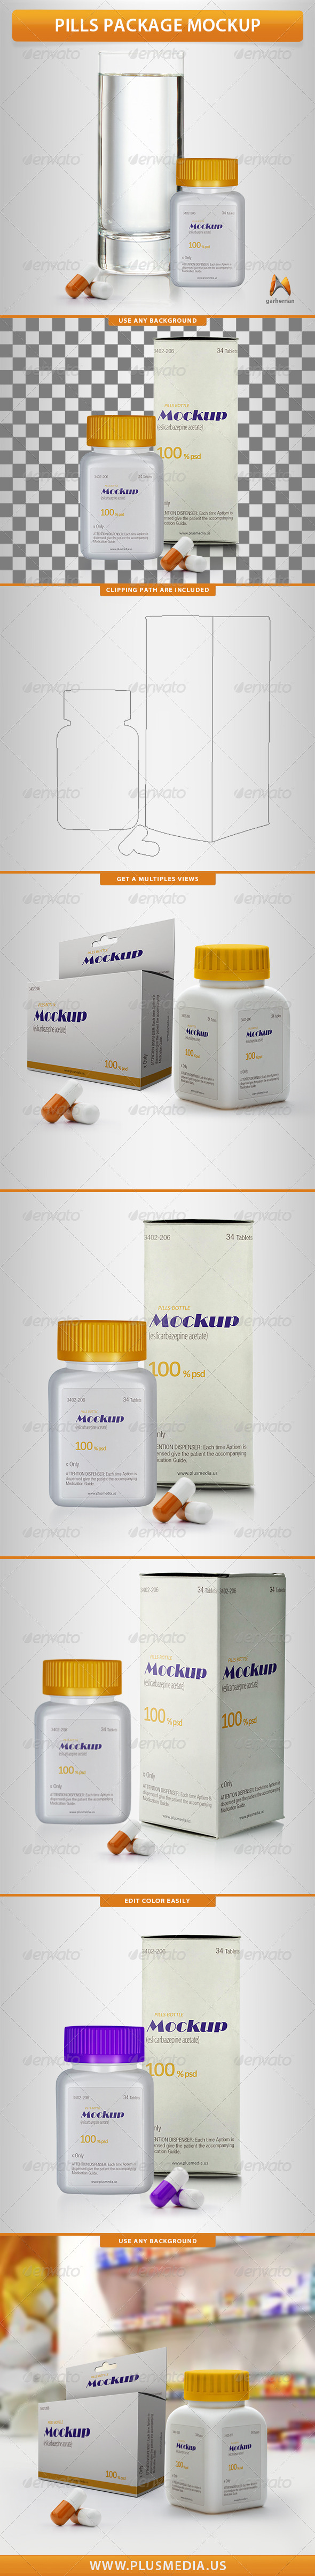 GraphicRiver Pills Package Mockup 8694726